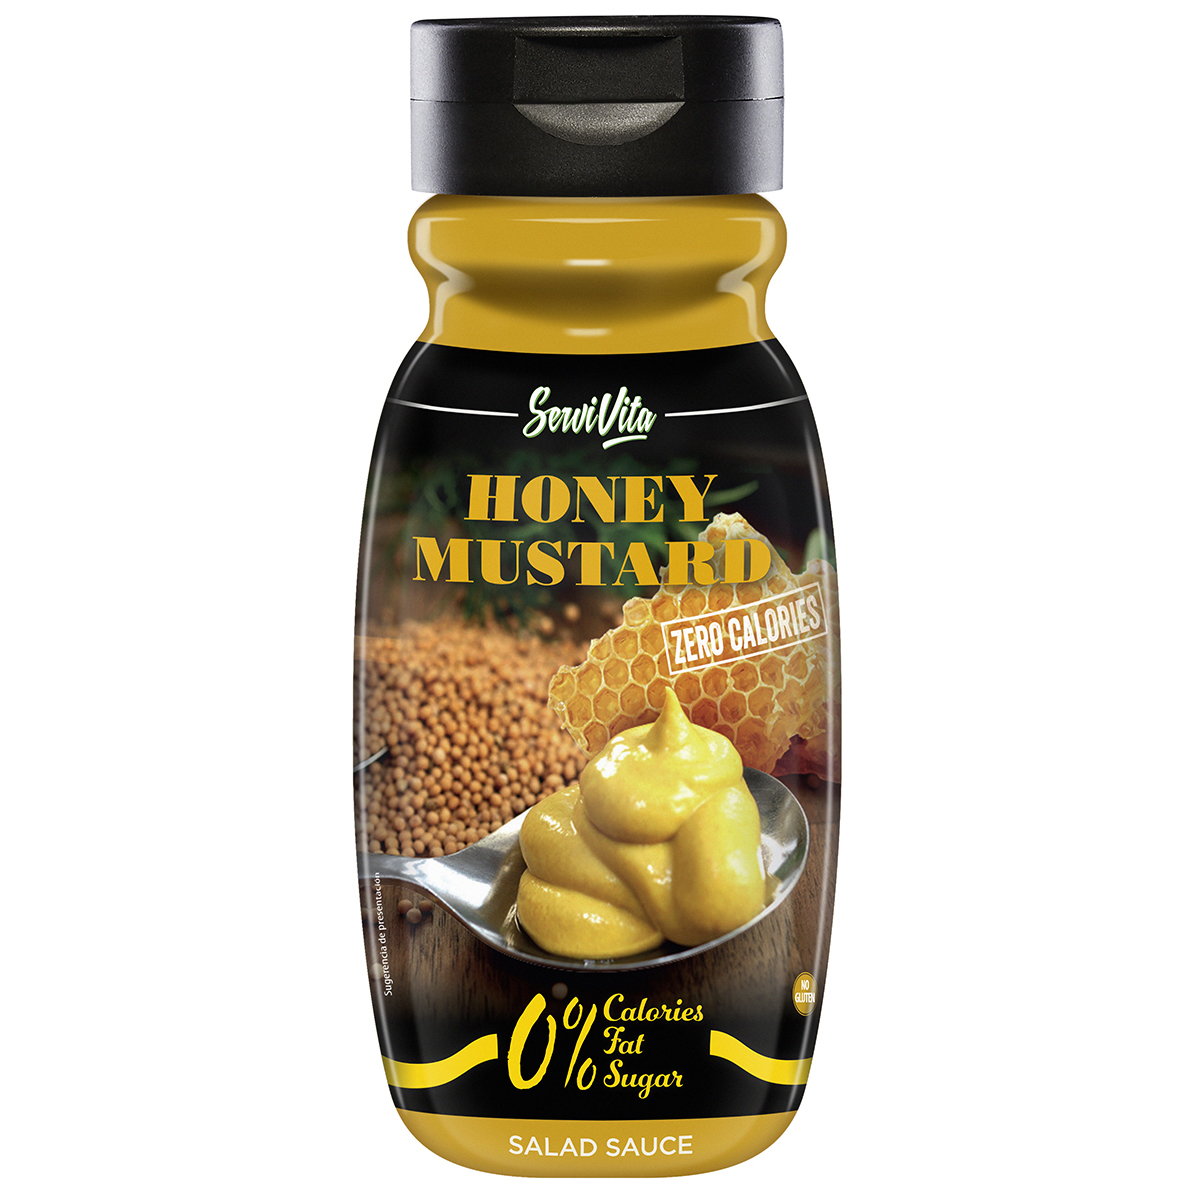 Sleever_Honey_mustard_fons_blanc (1)